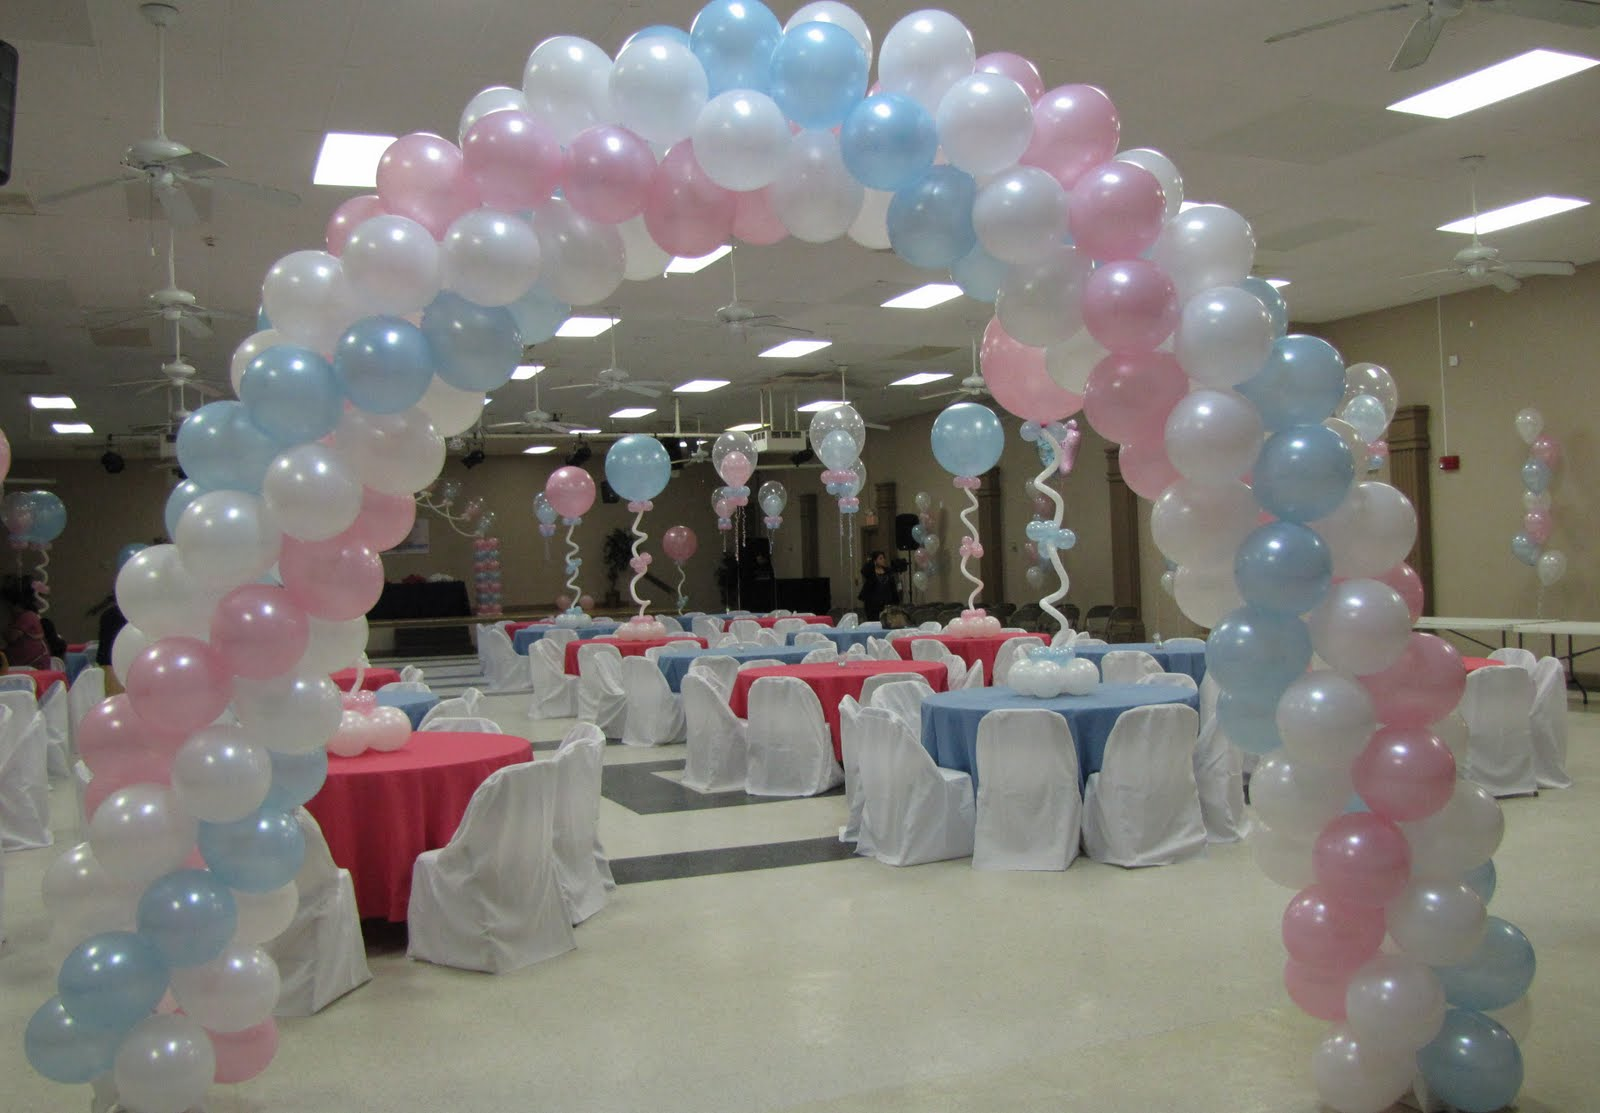 Balloons decorations for baby shower party favors ideas for Baby shower decoration ideas